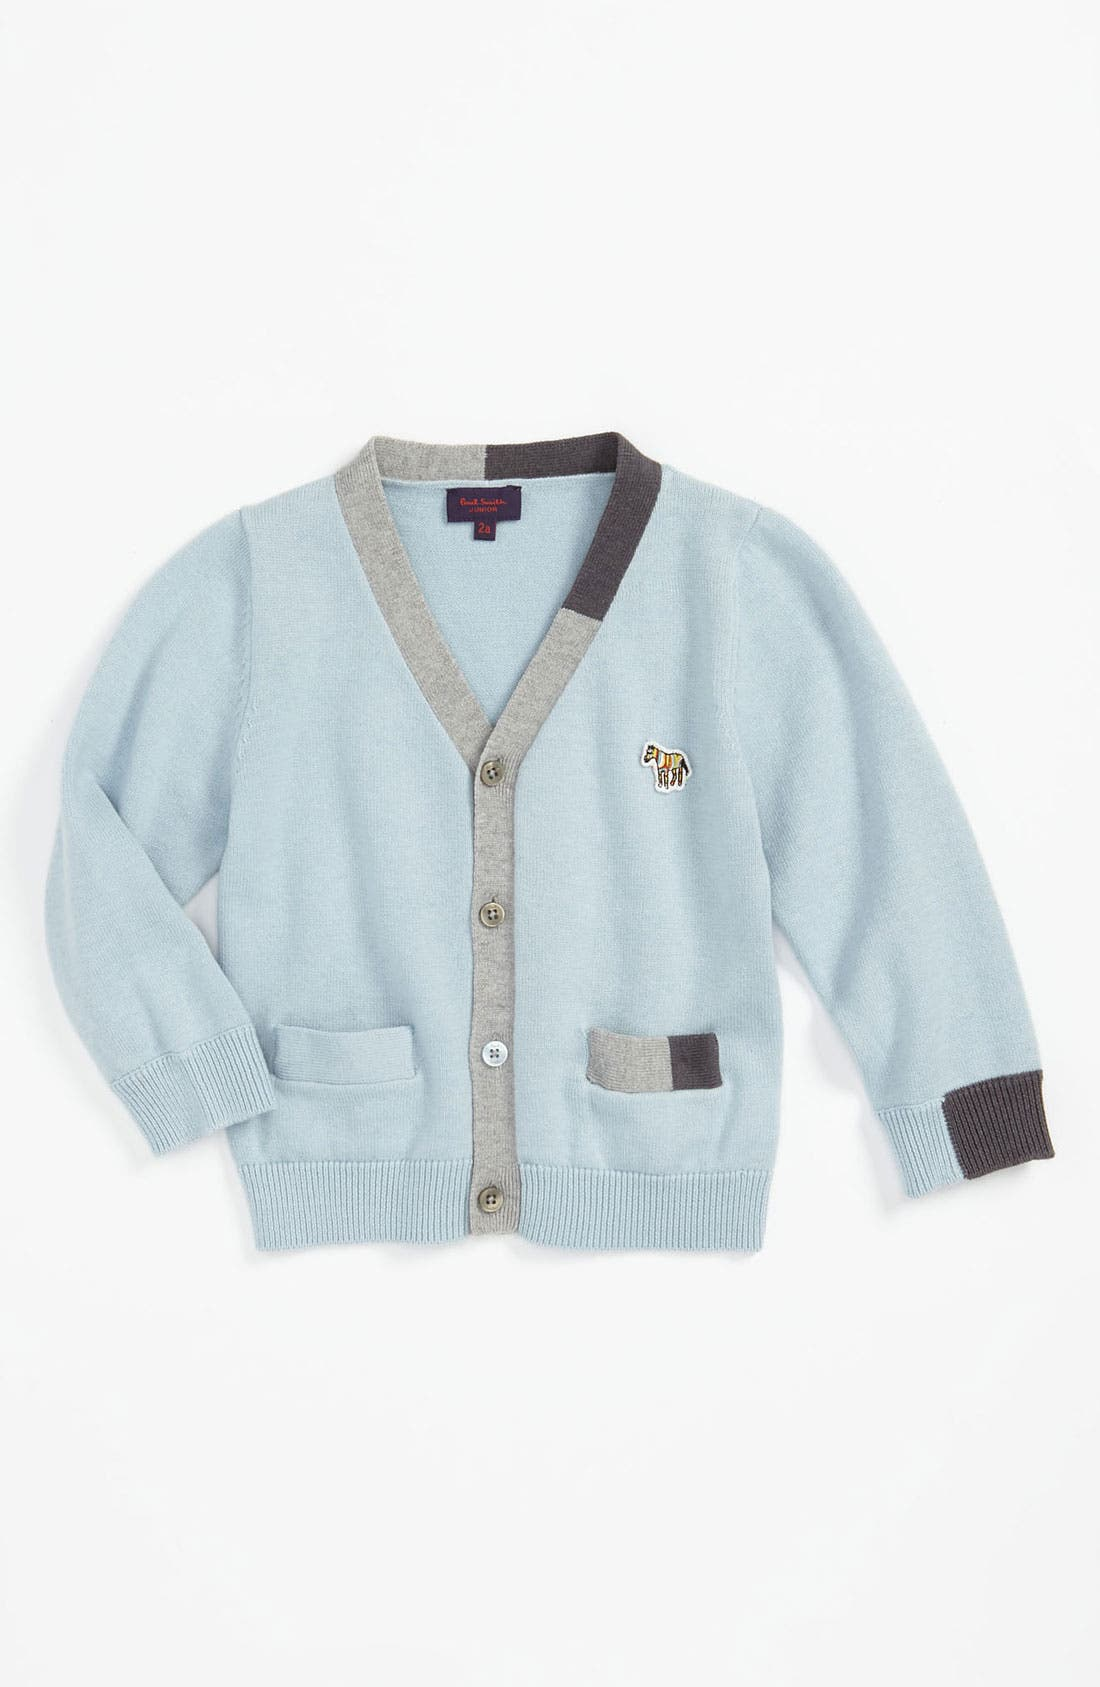 Alternate Image 1 Selected - Paul Smith Junior 'Colin' Cardigan (Toddler)